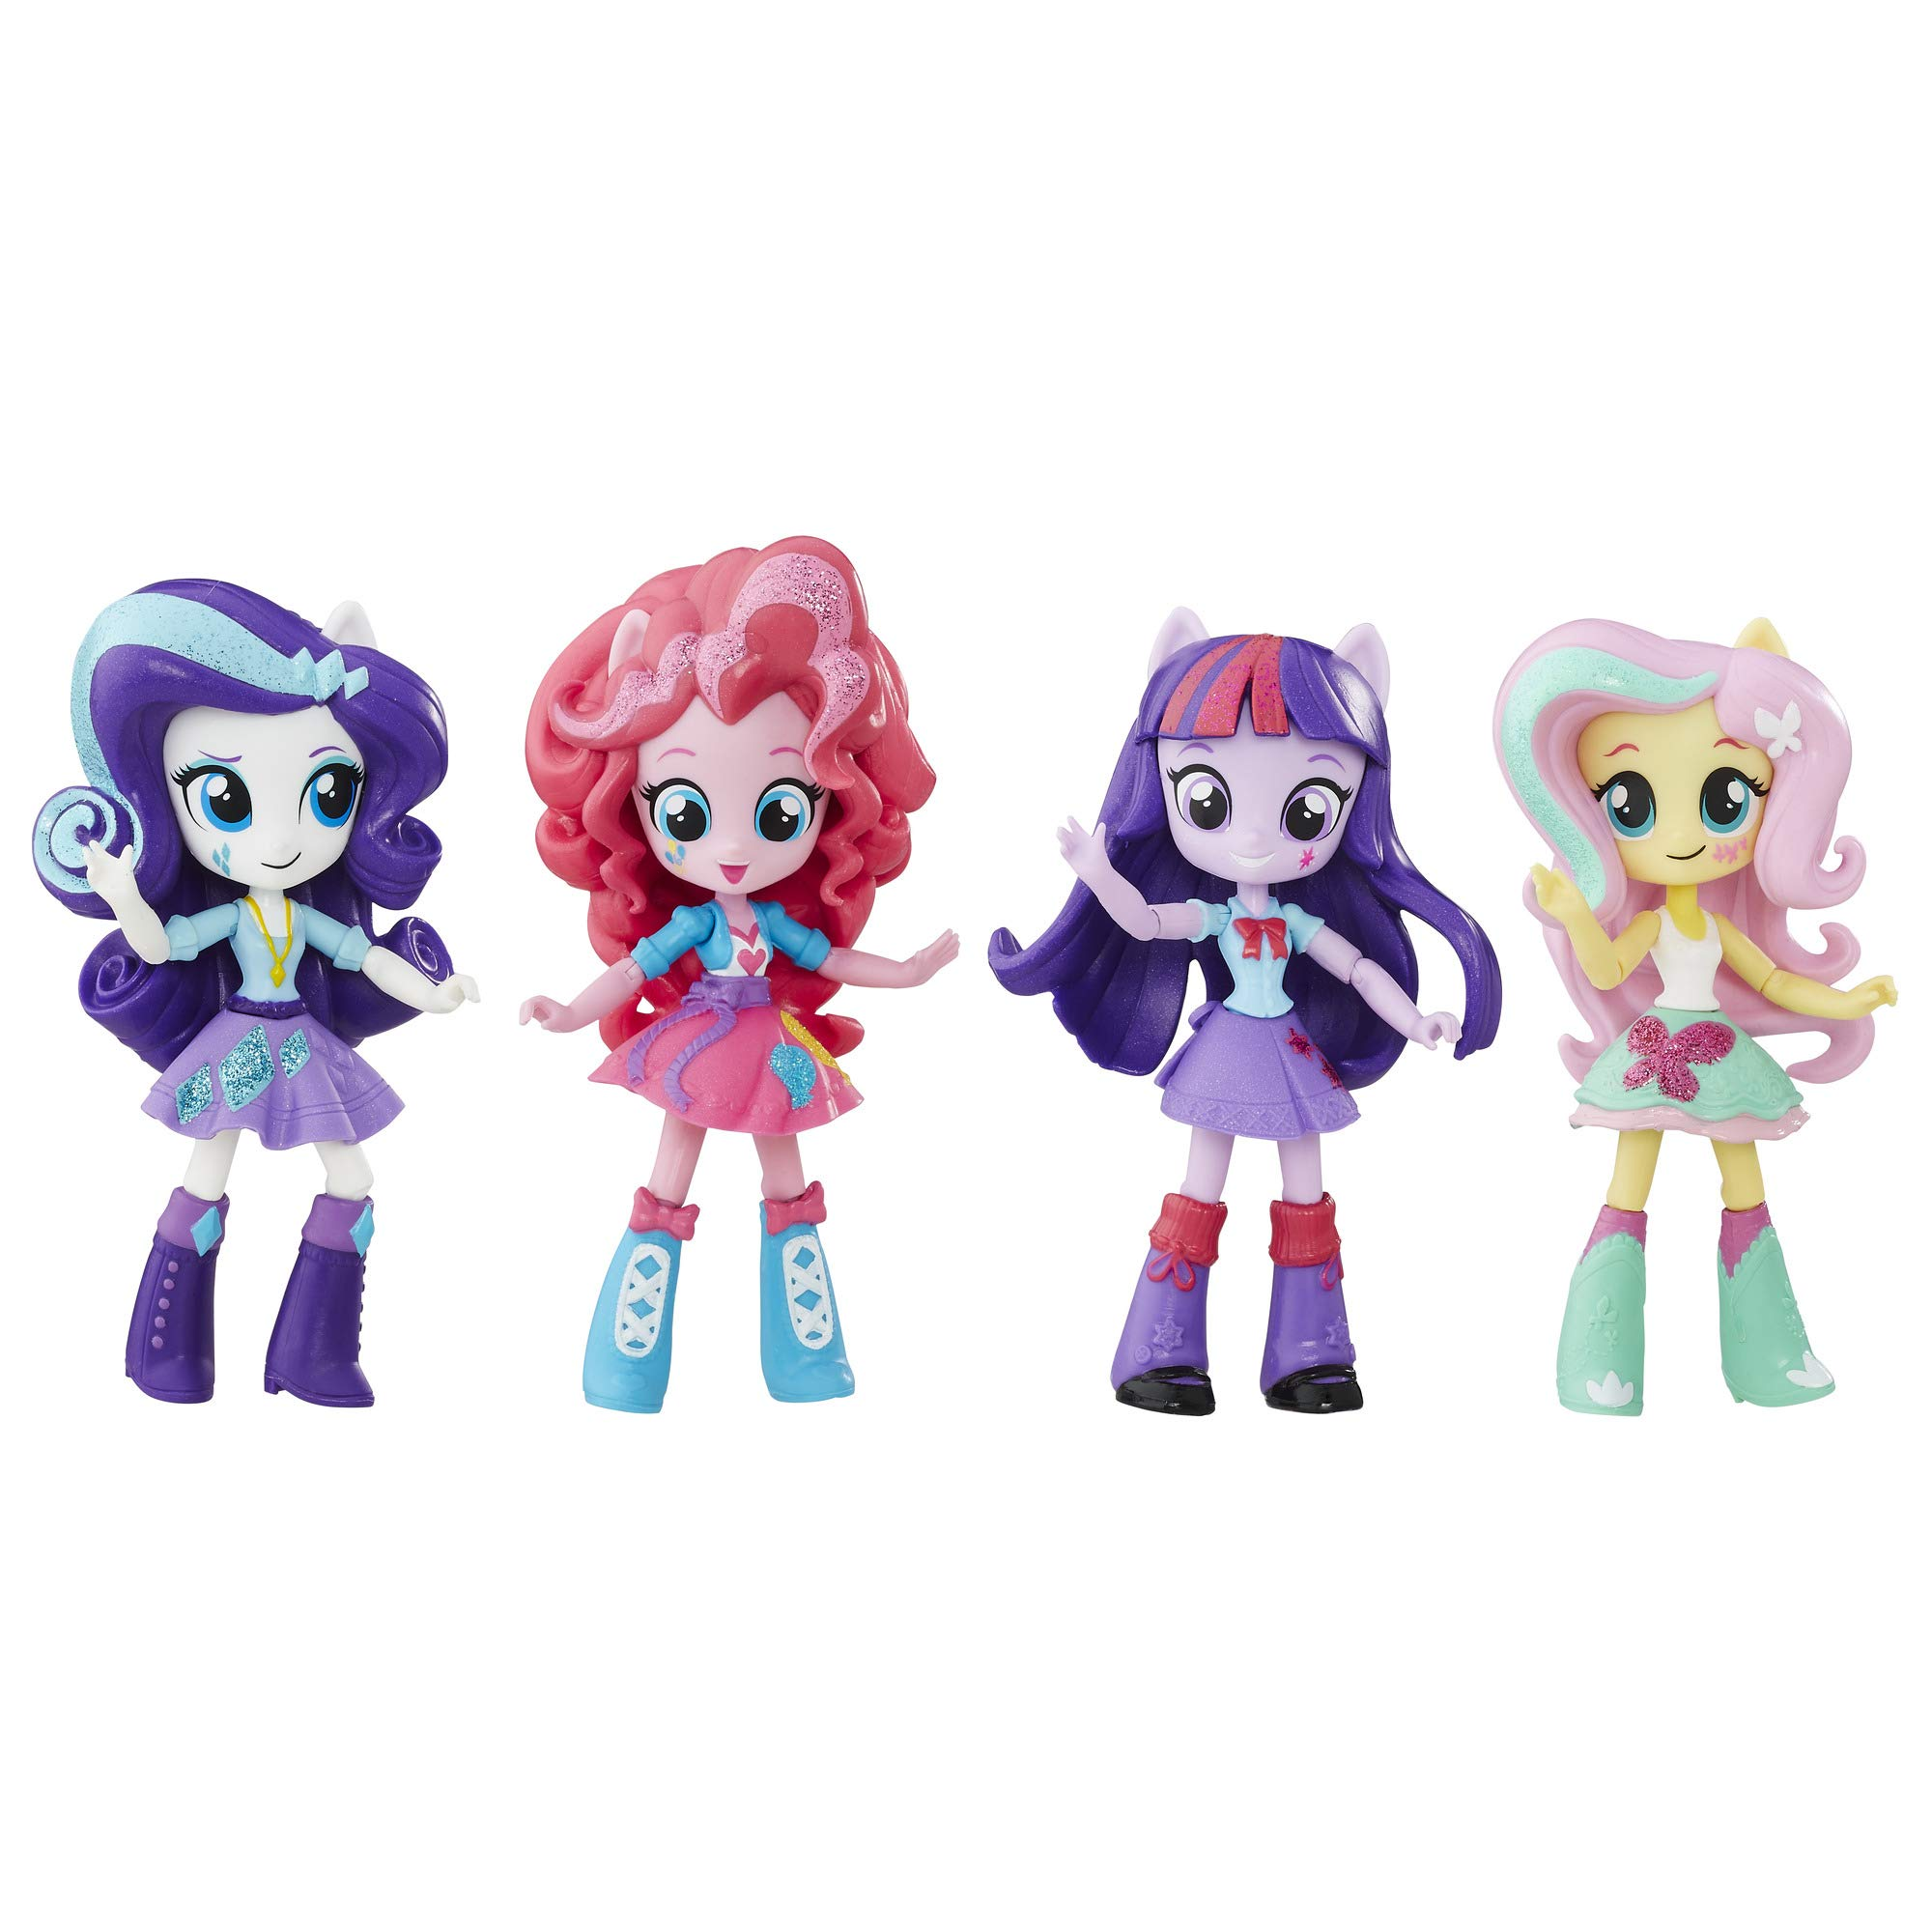 마이 리틀 포니: 이퀘스트리아 걸스 미니 인형 My Little Pony Twilight Sparkle, Pinkie Pie, Rarity & Fluttershy Toys - Equestria Girls 4.5-Inch Mini-Dolls